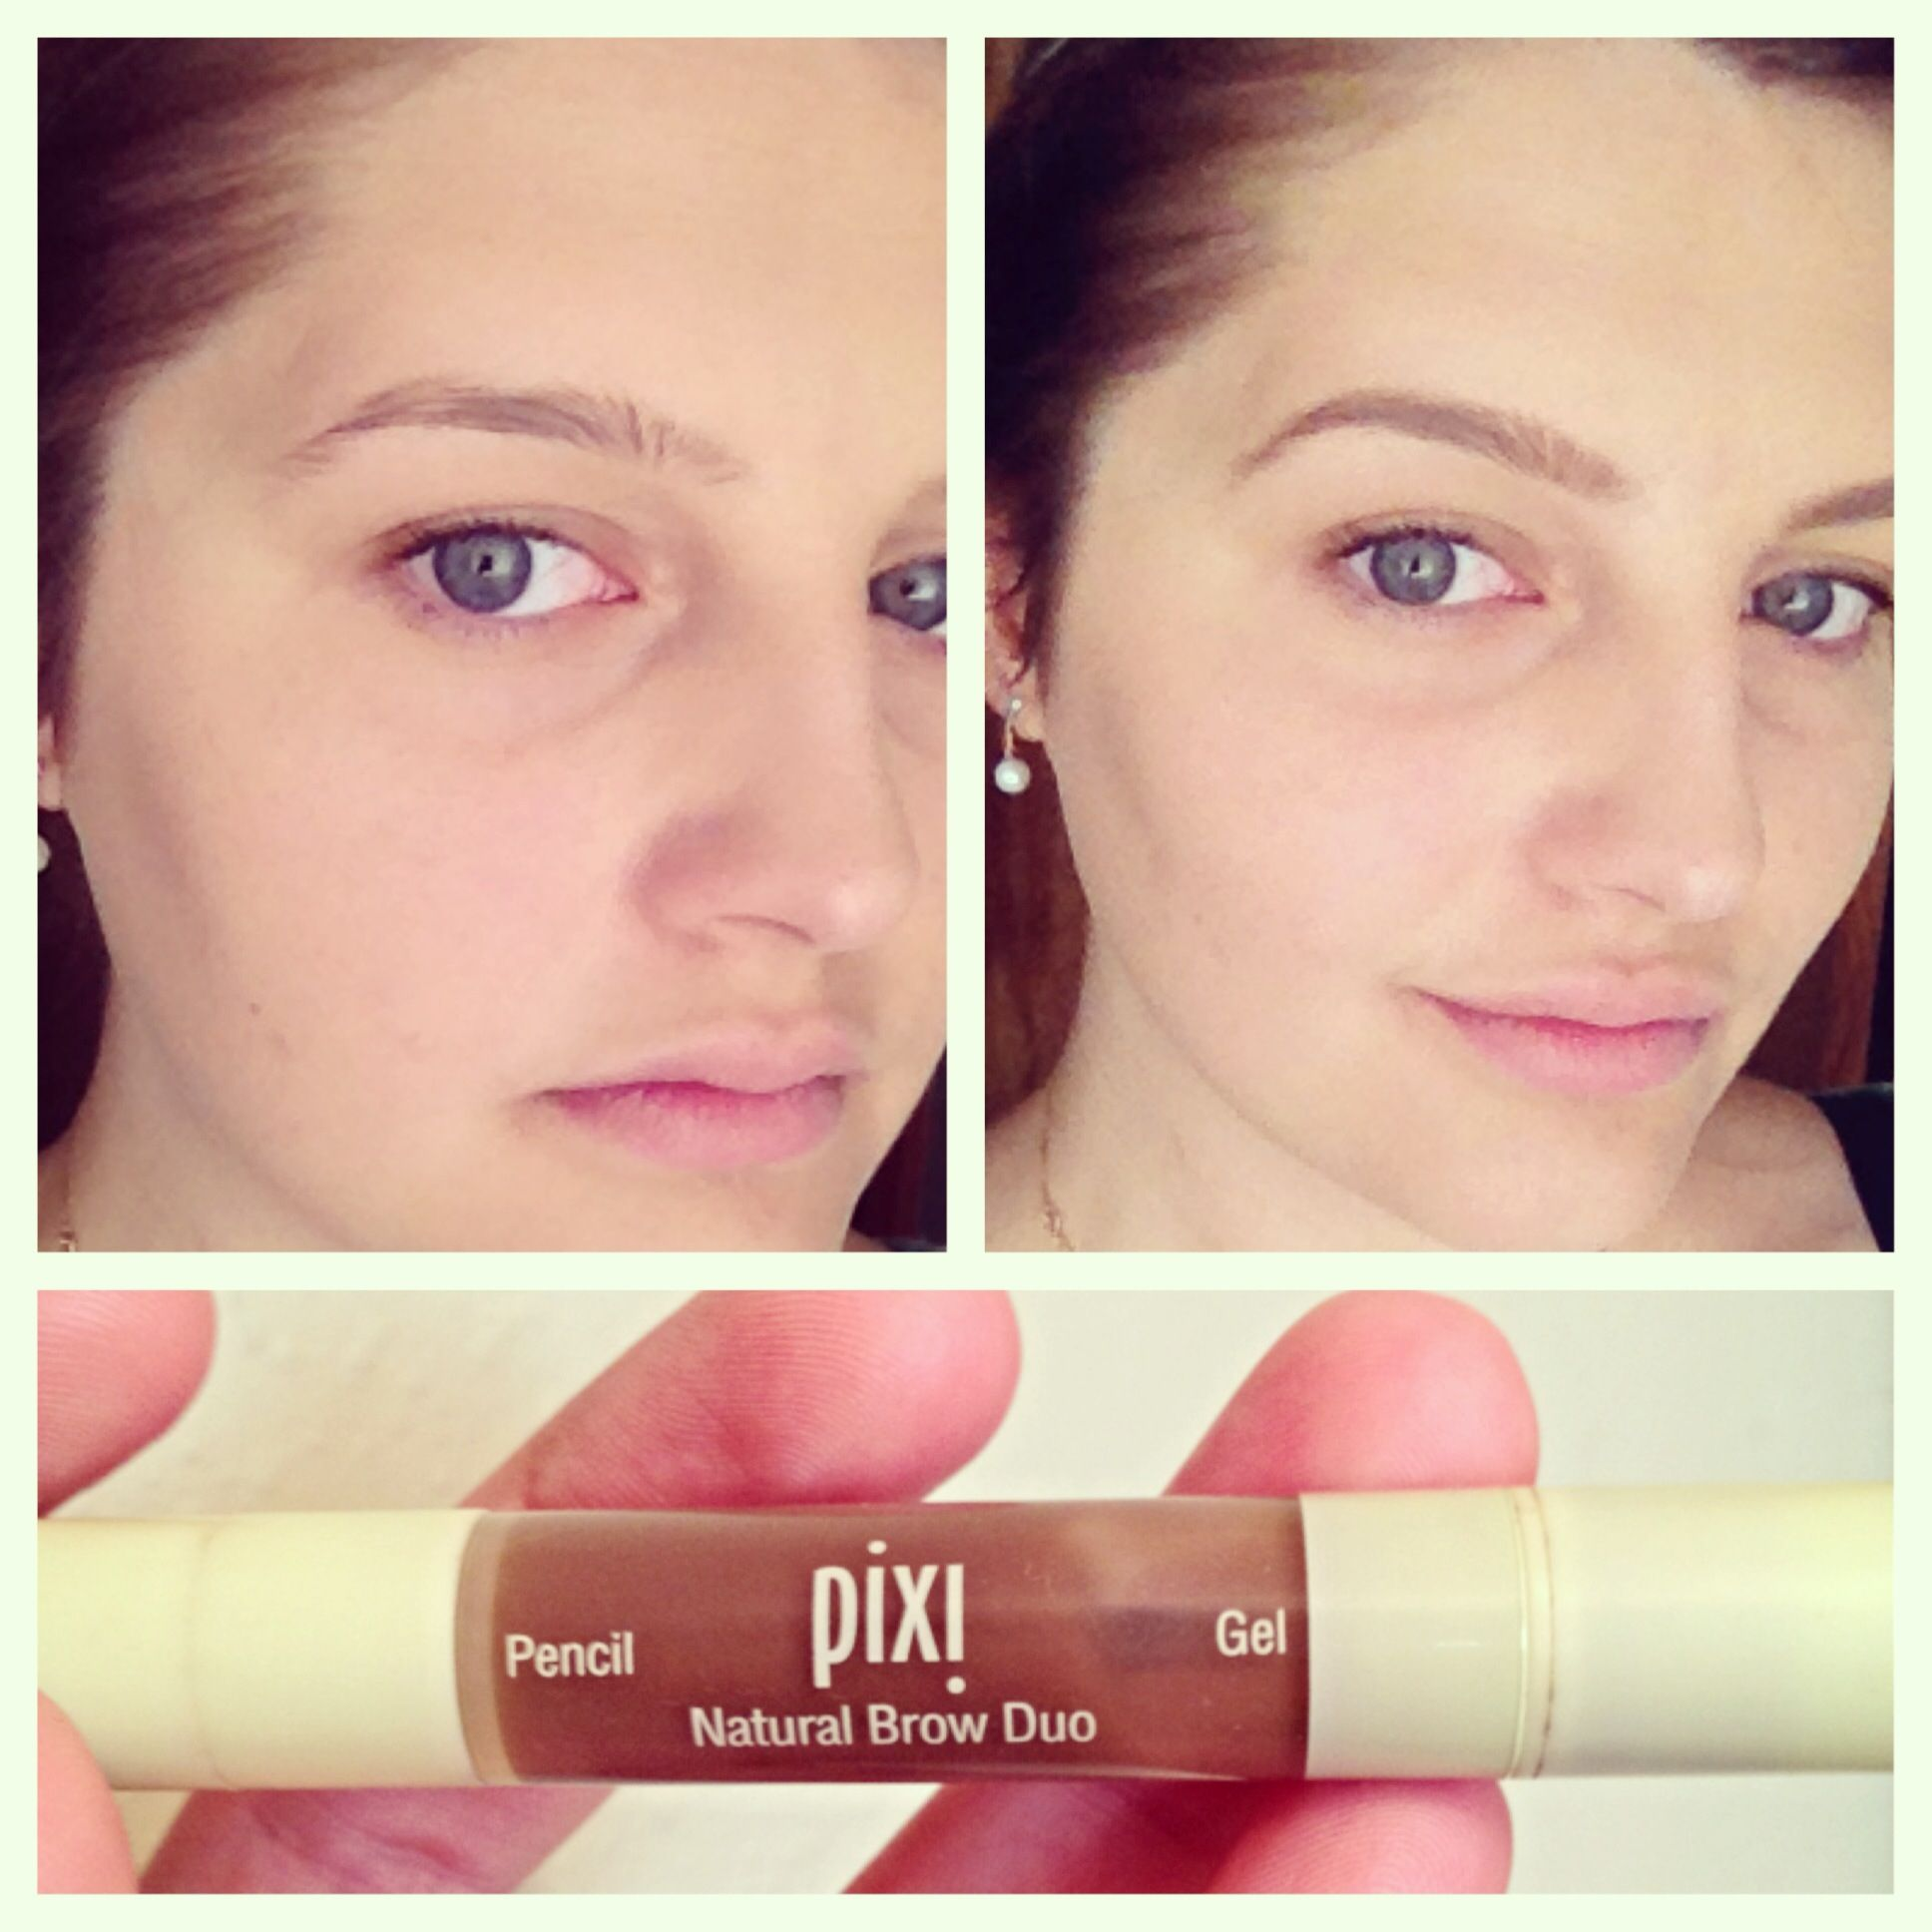 Pin By Veronica Cuellar On Hair And Beauty Best Eyebrow Products Skin Makeup Best Eyebrow Filler